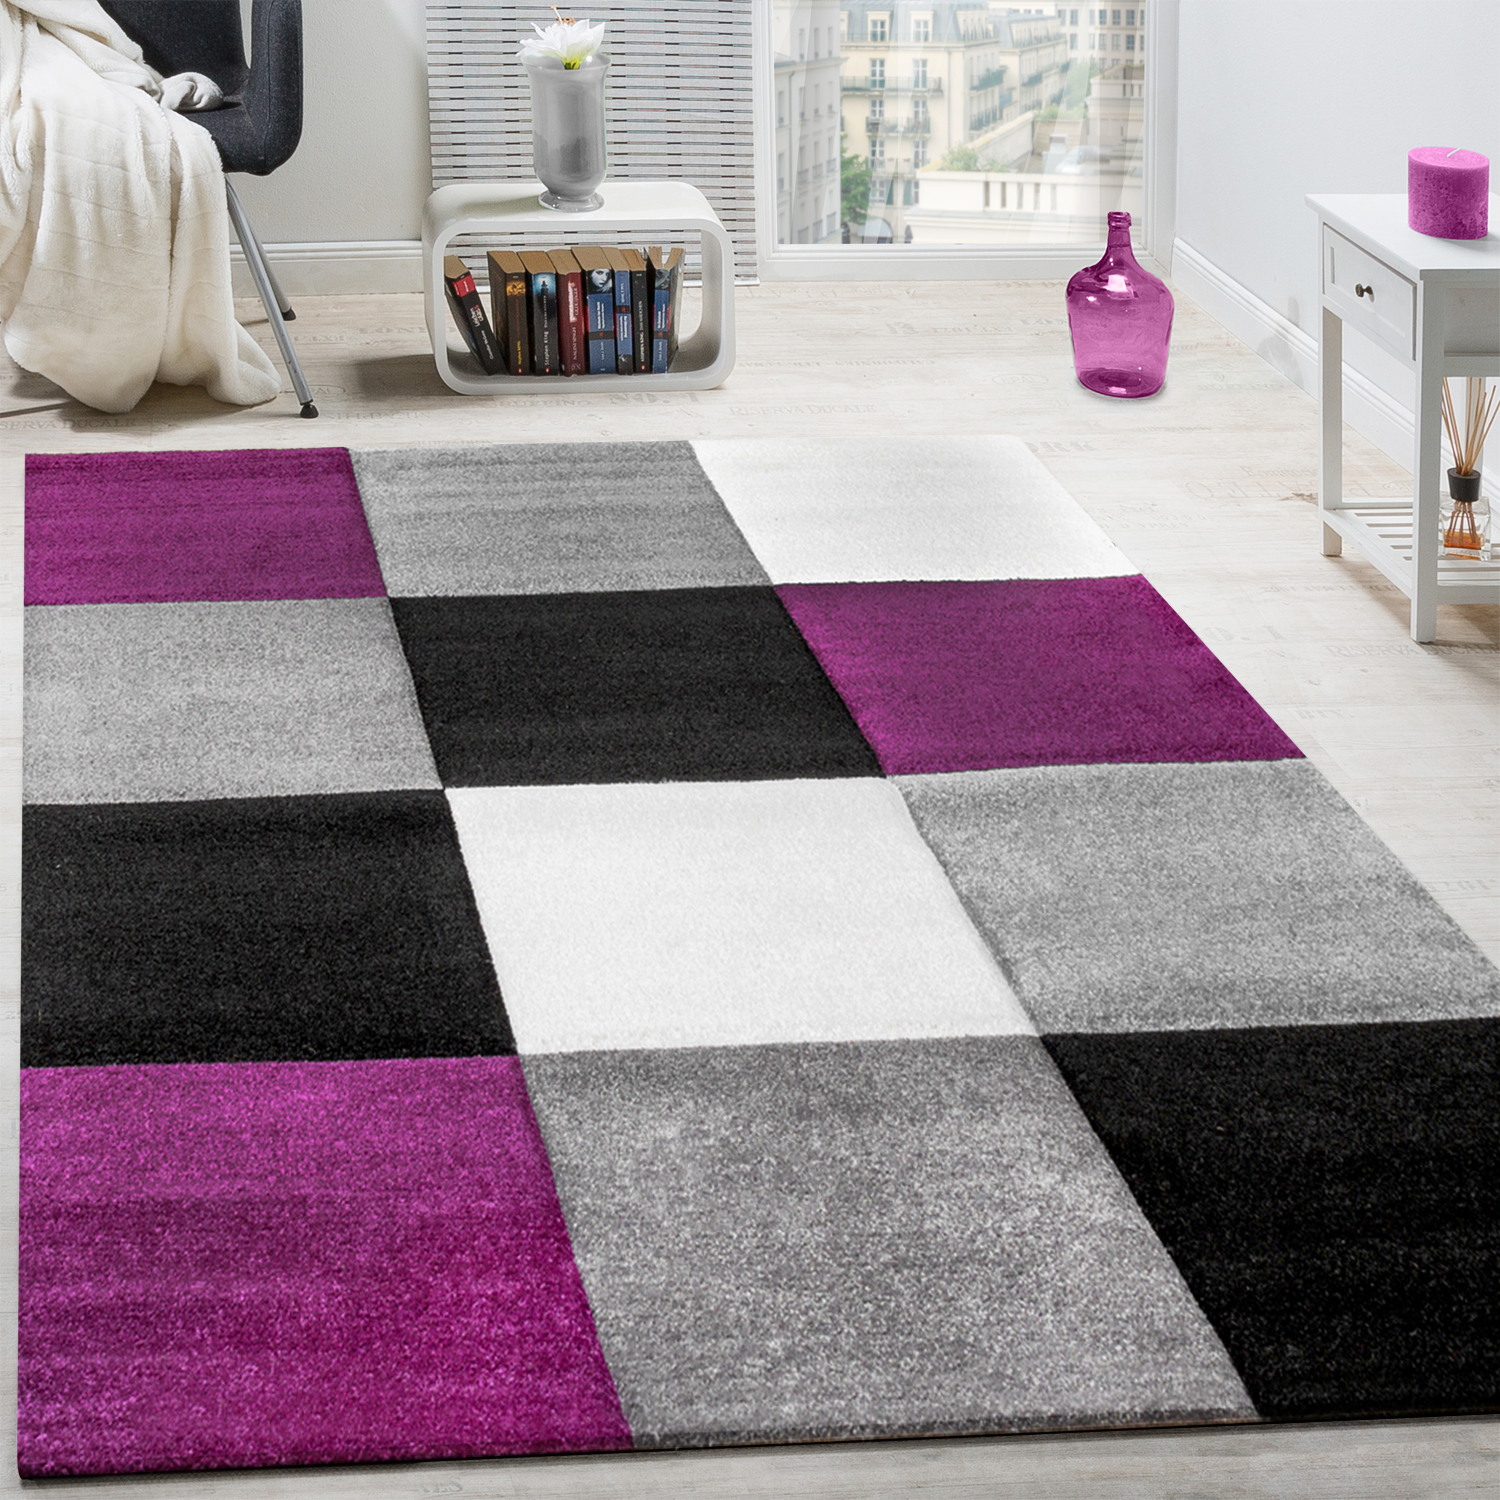 Rug Modern Living Room Short Pile Checked Design Purple Black Grey  CLEARANCE SALE